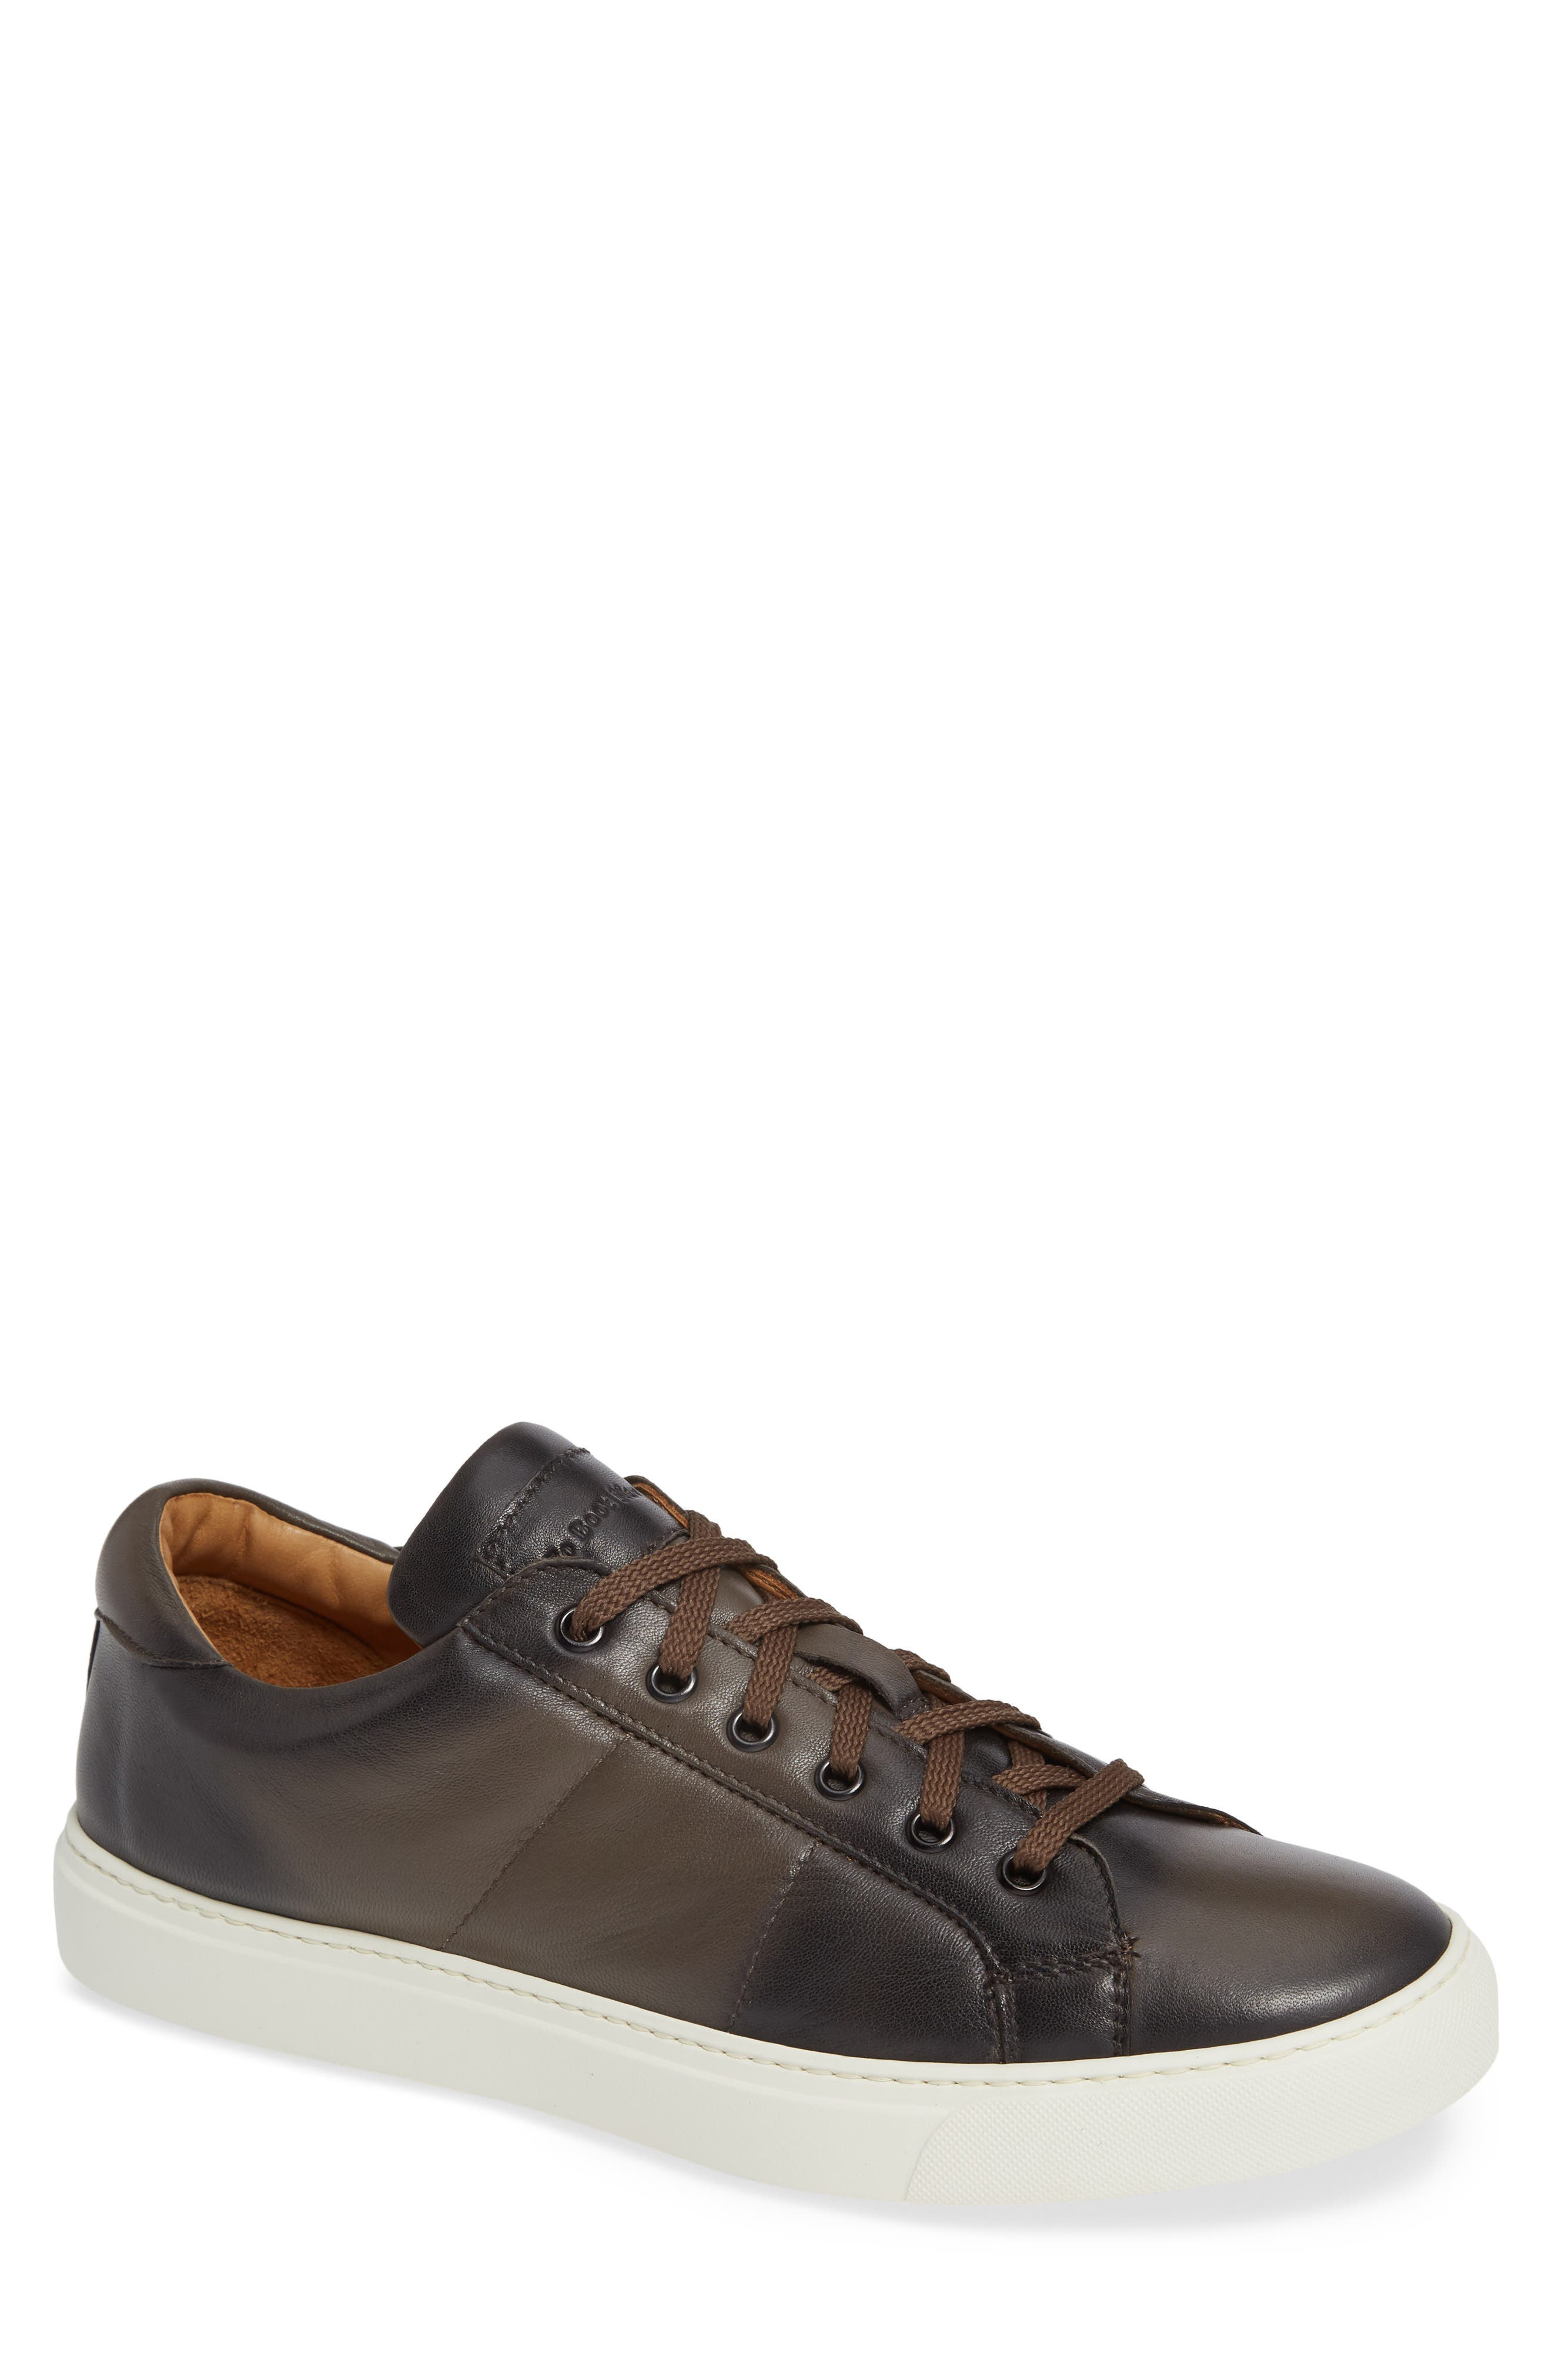 Colton Sneaker,                             Main thumbnail 1, color,                             TAUPE GREY LEATHER